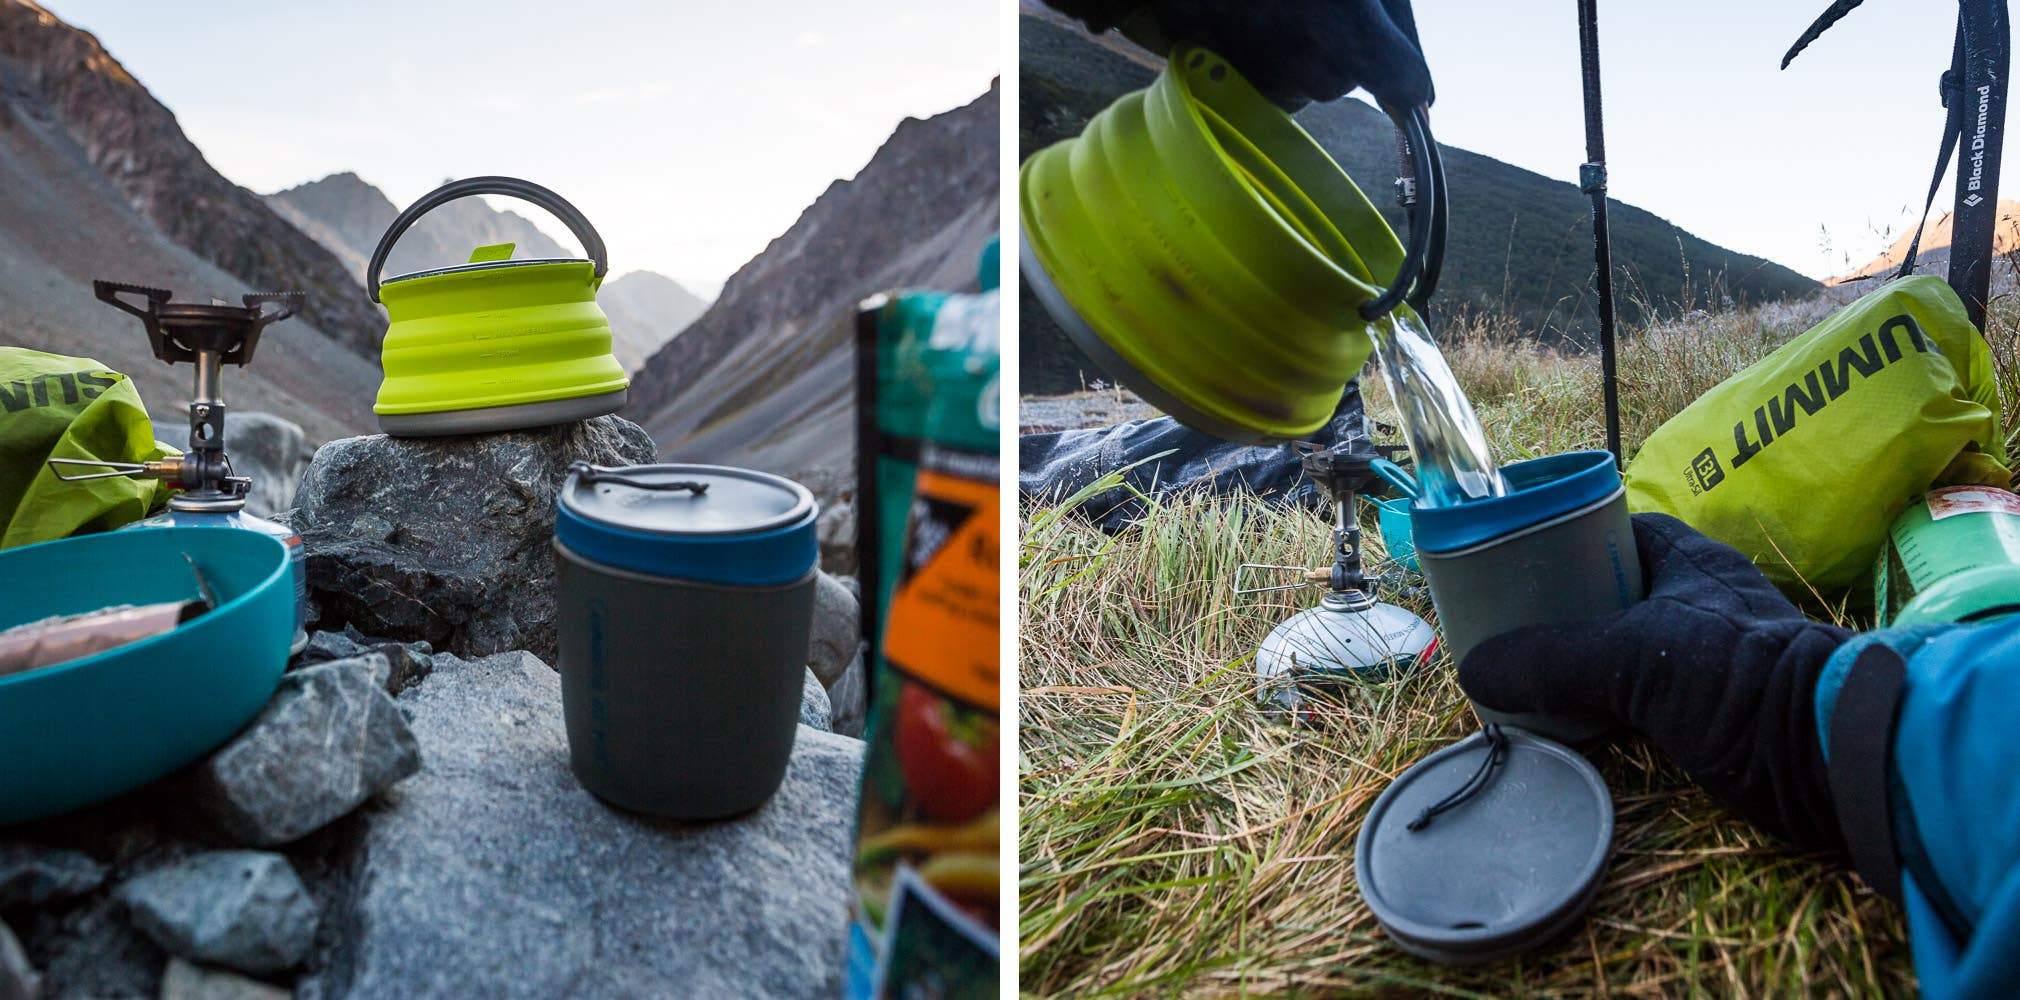 REVIEW: SEA TO SUMMIT X-SERIES COOKWEAR   Paddy Pallin